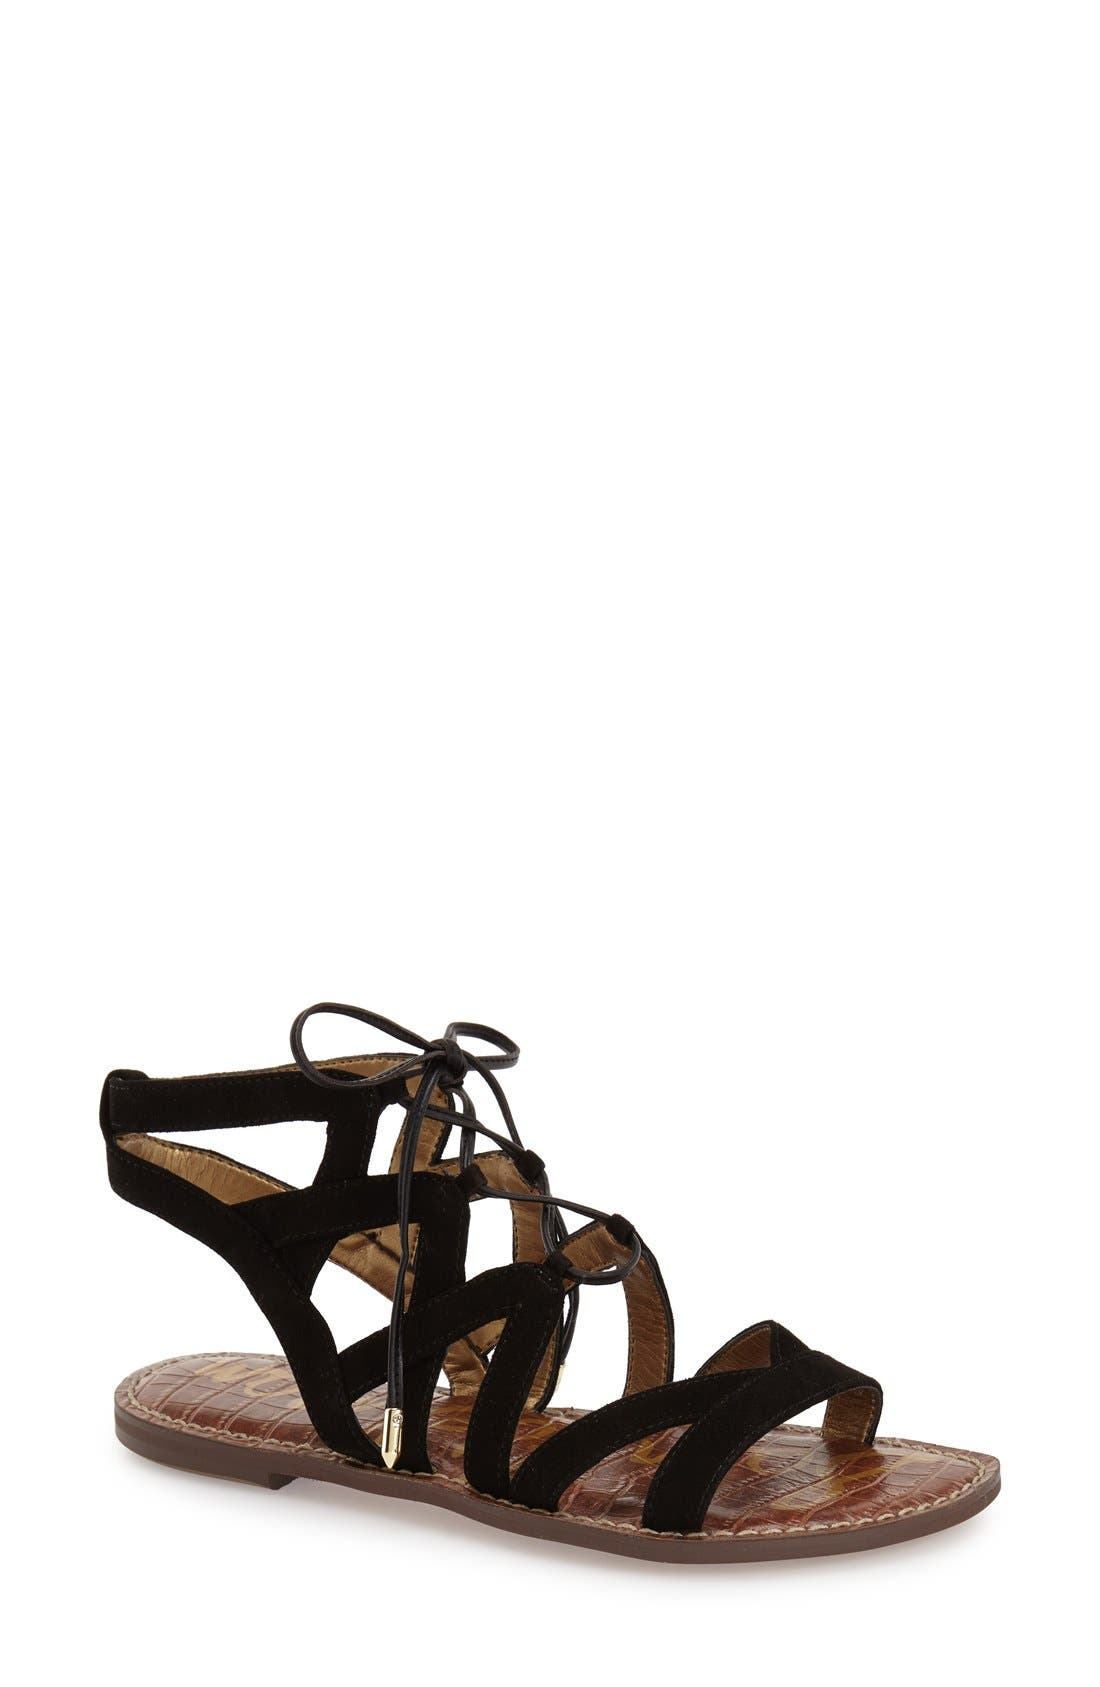 Alternate Image 1 Selected - Sam Edelman Gemma Lace-Up Sandal (Women)